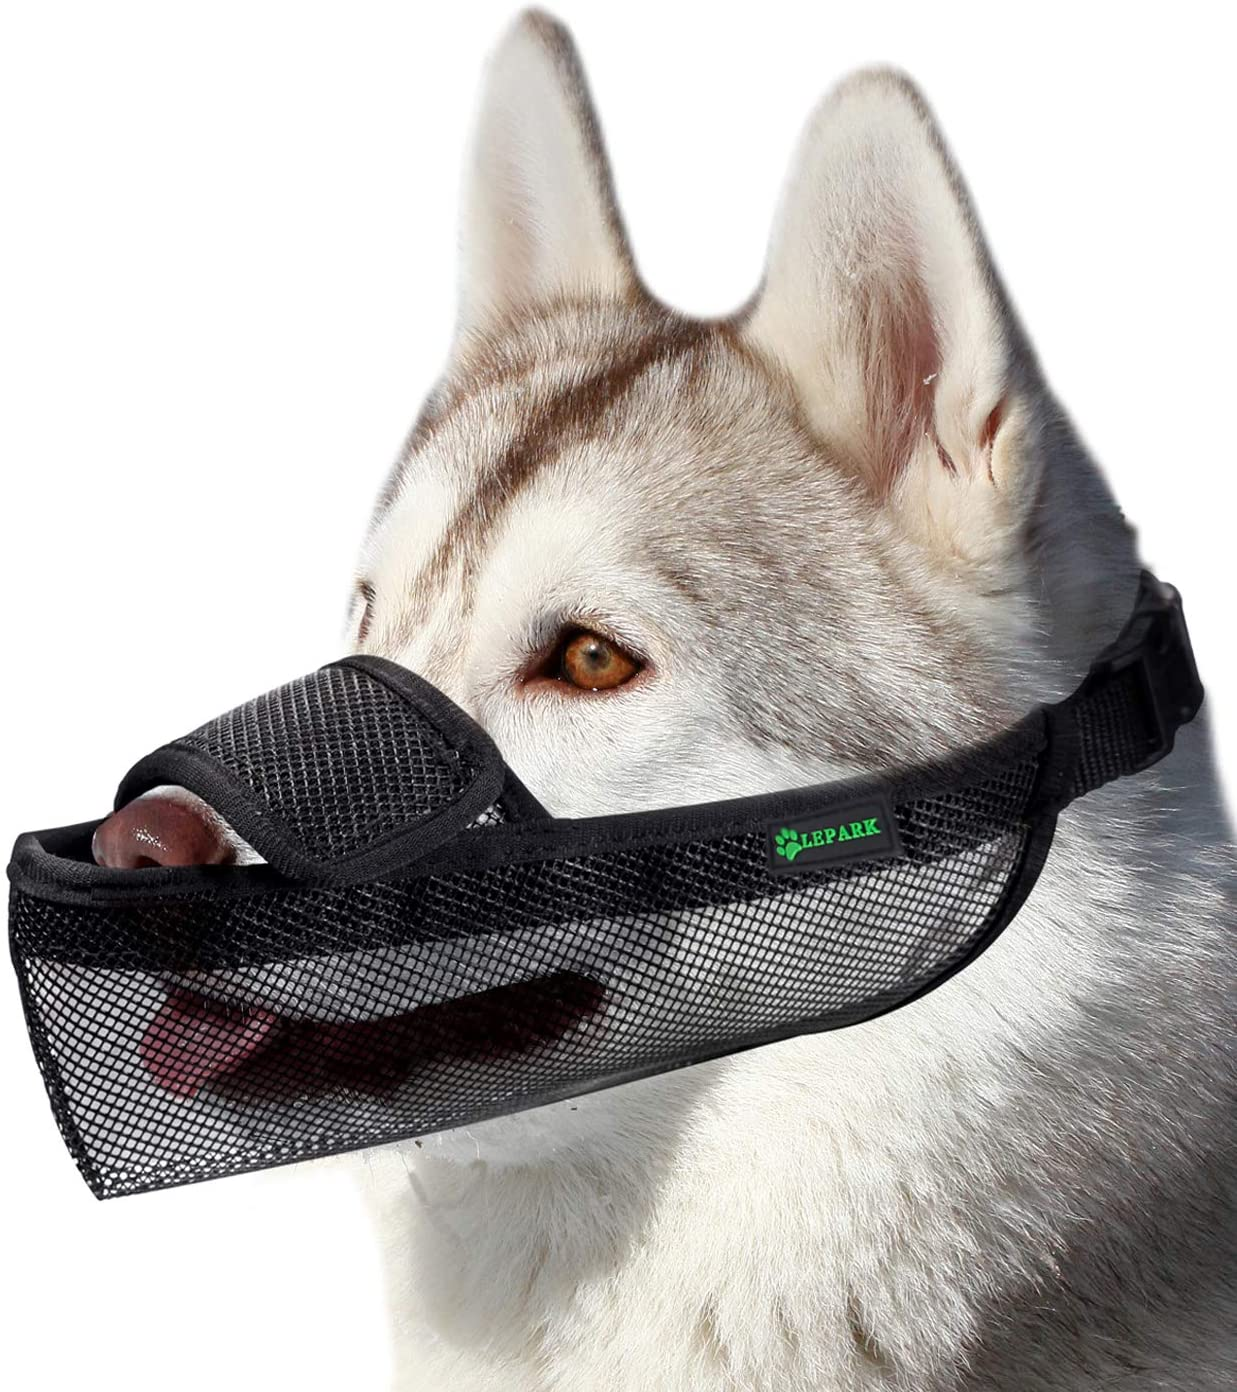 Dog Muzzle Mesh Mask with Velcro for Small, Medium and Large Dogs, Anti Biting, Barking and Chewing, Ajustable and Breathable